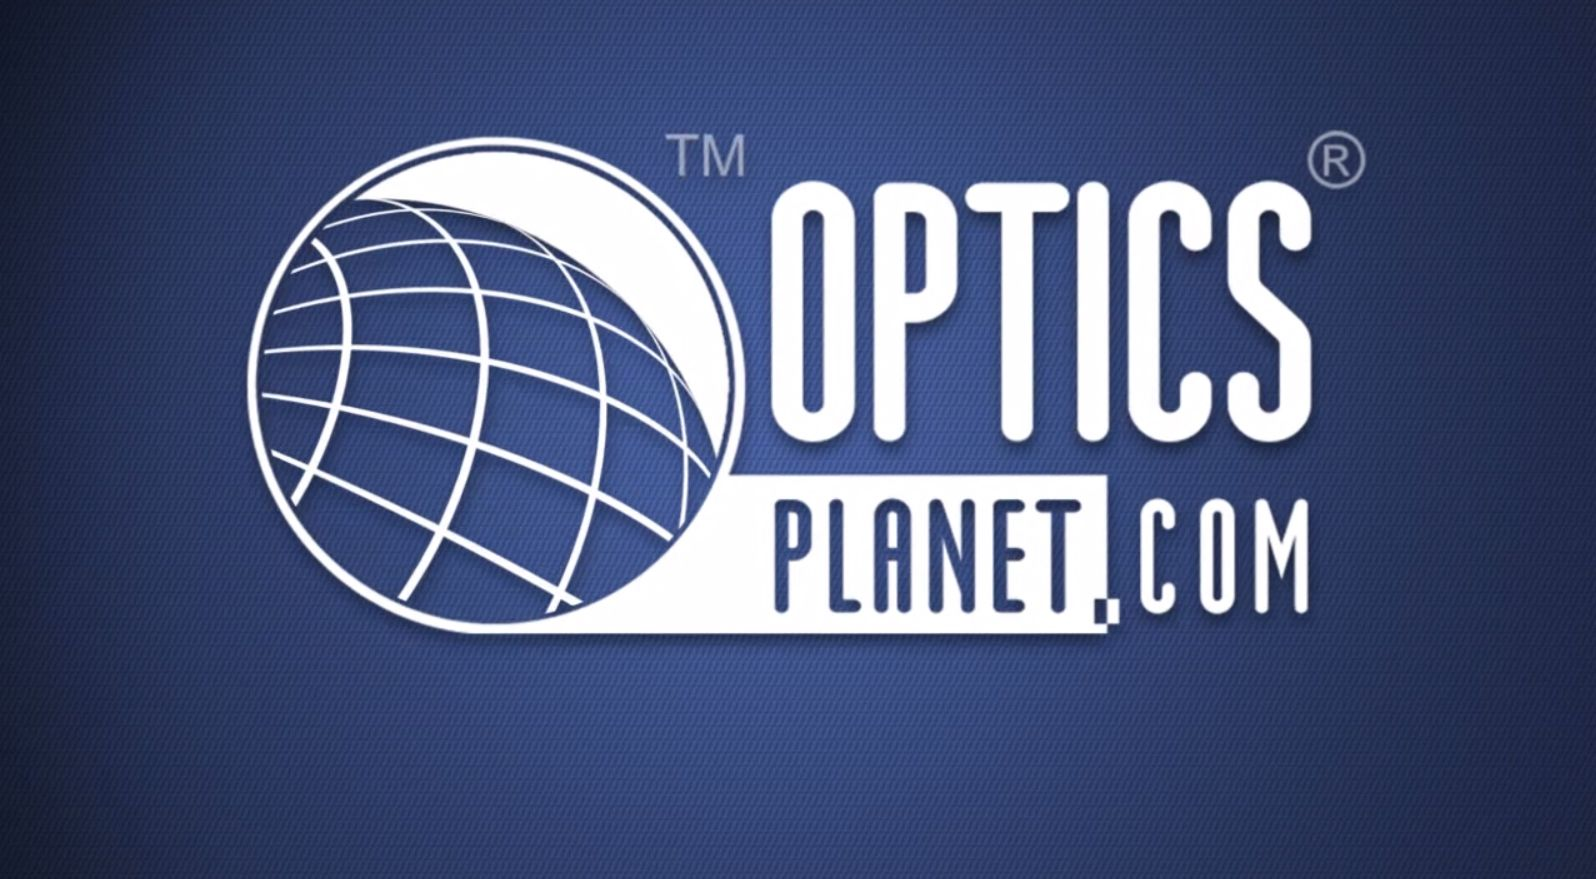 Optics Planet is on its next mission - Mission for the Mighty. Prominent industry brands have joined our mission to help give back through offering weeks' worth of exclusive deals & offers with the added bonus of each purchase directly benefiting the mighty: veterans, service members, and their families.